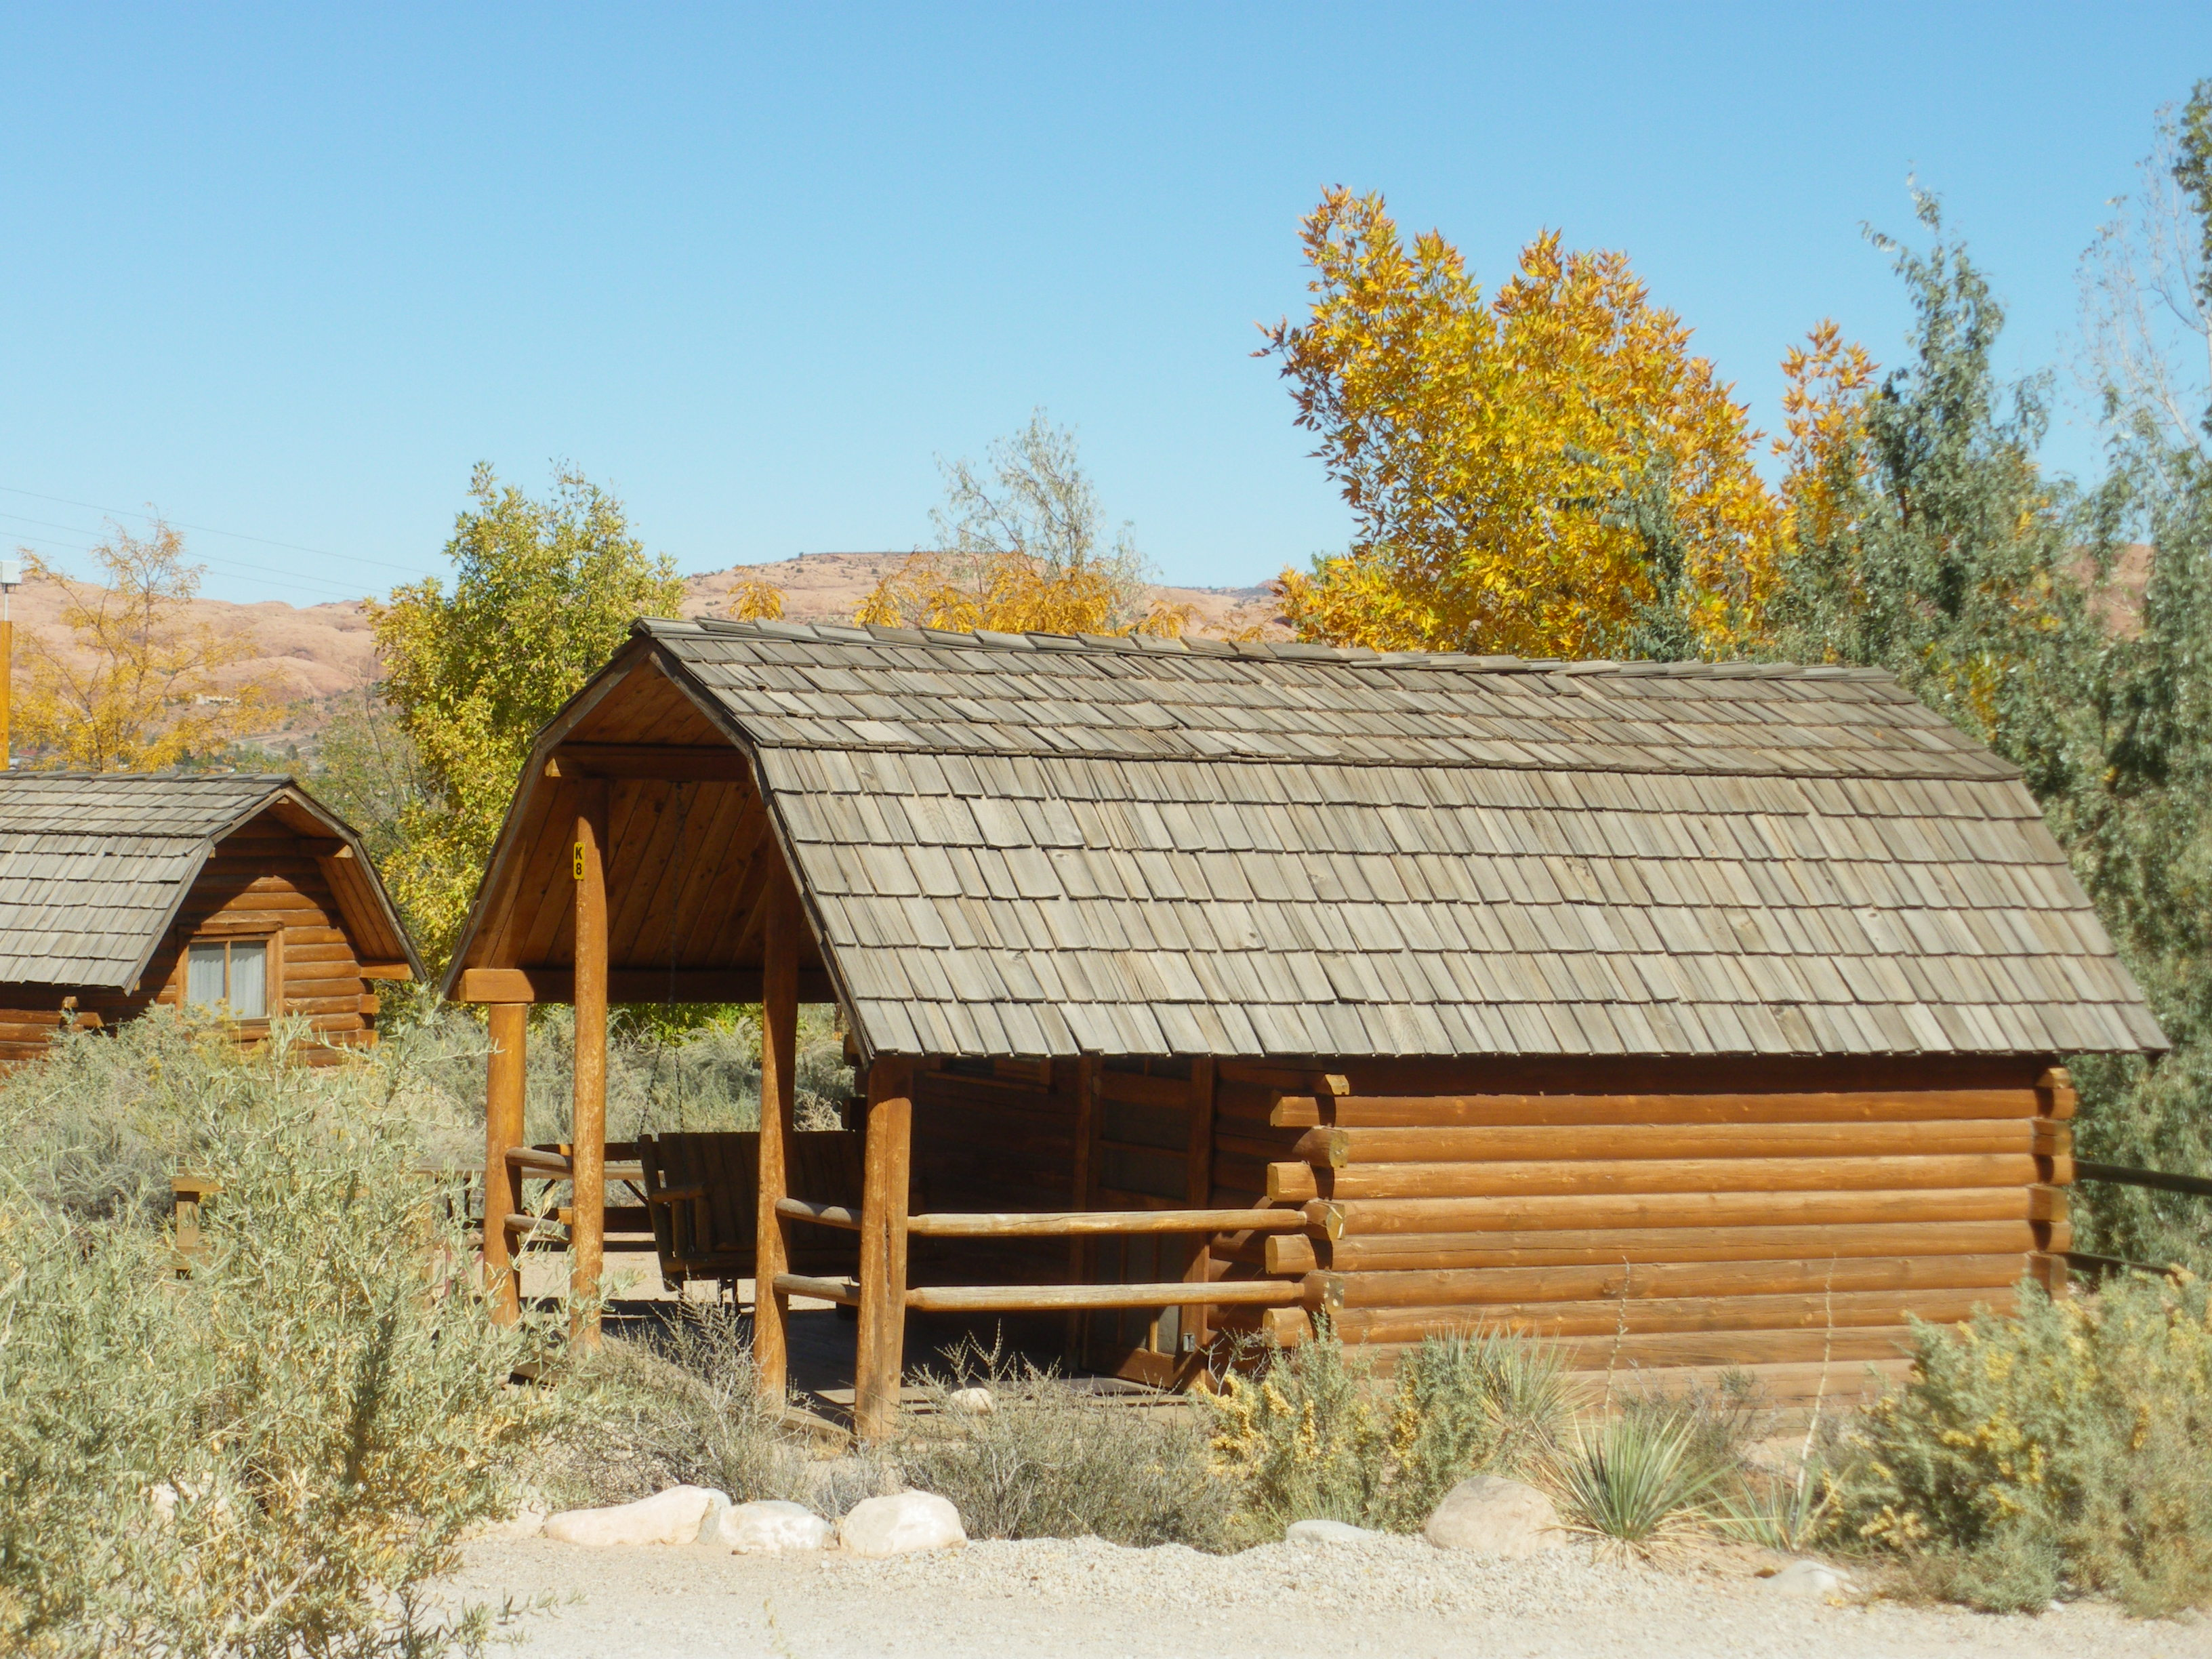 cabin site rentals moab utah cabins type koa campgrounds lodging